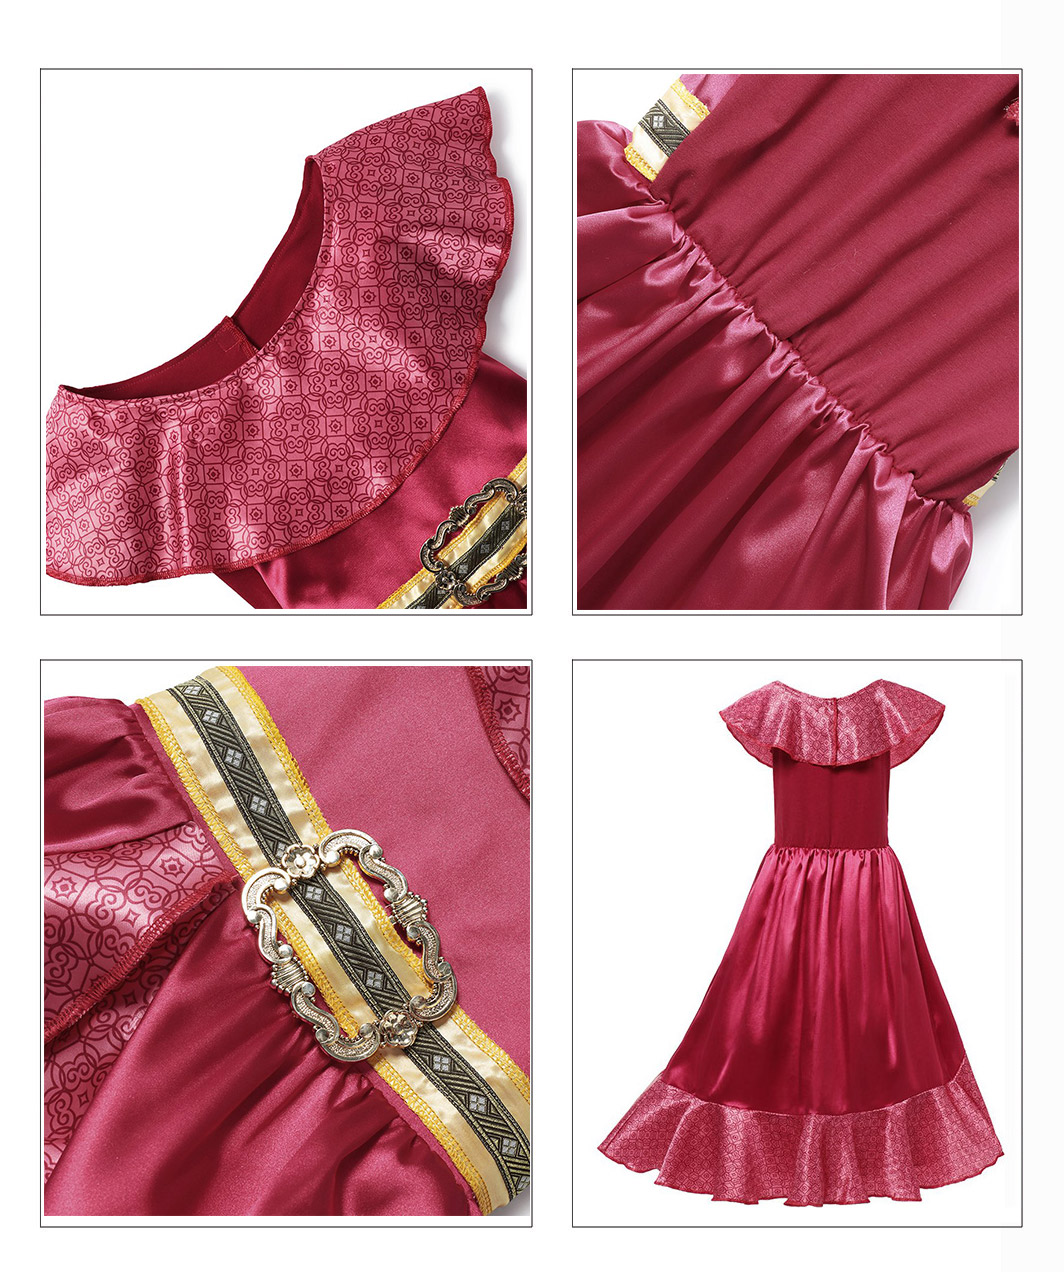 H81d1300641f8455483a9a5ace15cb424B - Fancy Baby Girl Princess Clothes Kid Jasmine Rapunzel Aurora Belle Ariel Cosplay Costume Child Elsa Anna Elena Sofia Party Dress